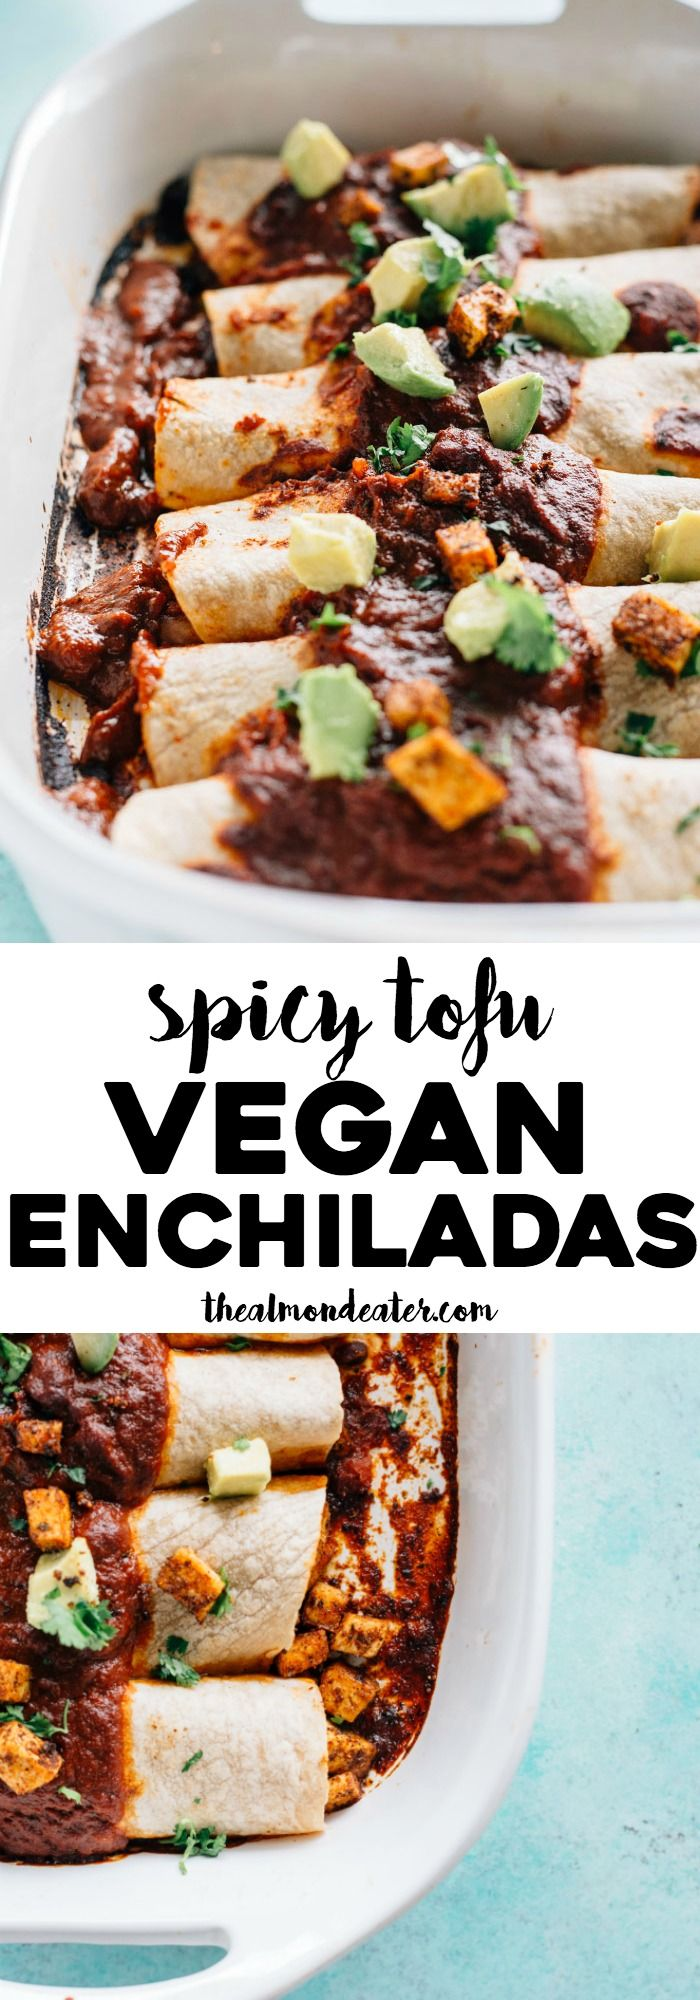 Spicy Tofu Vegan Enchiladas | Delicious enchiladas filled with crispy tofu, black beans and diced tomatoes & topped with a spicy chipotle sauce and avocados | thealmondeater.com